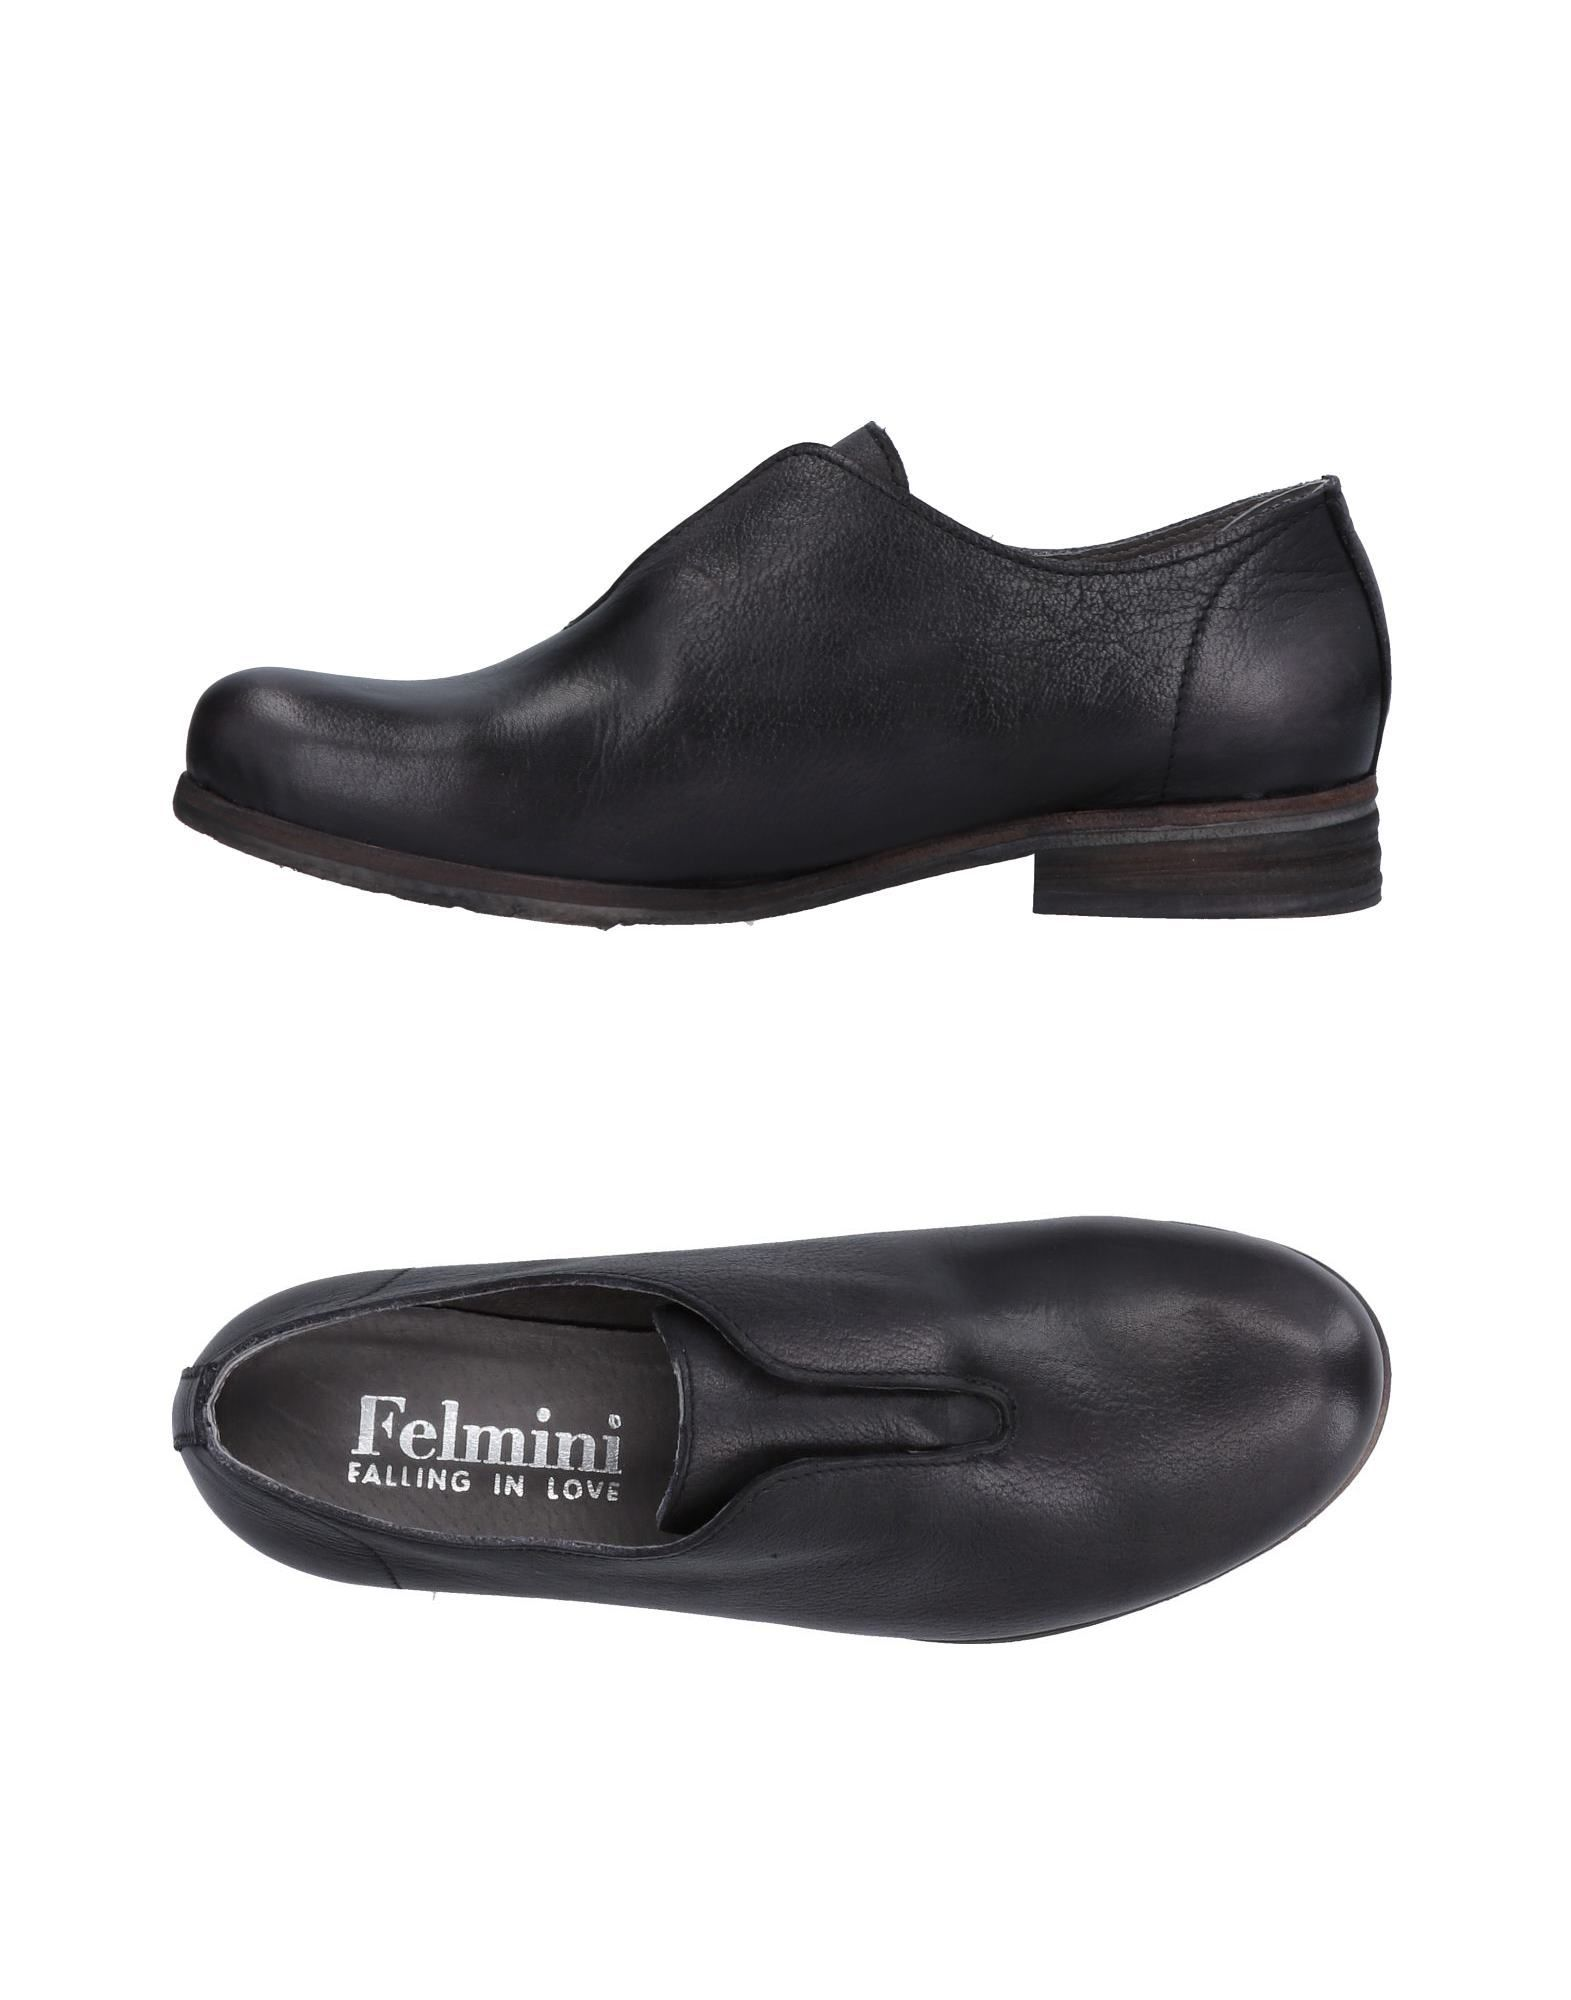 Moda Mocassino Felmini Donna Donna Felmini - 11505589KS 2c062e